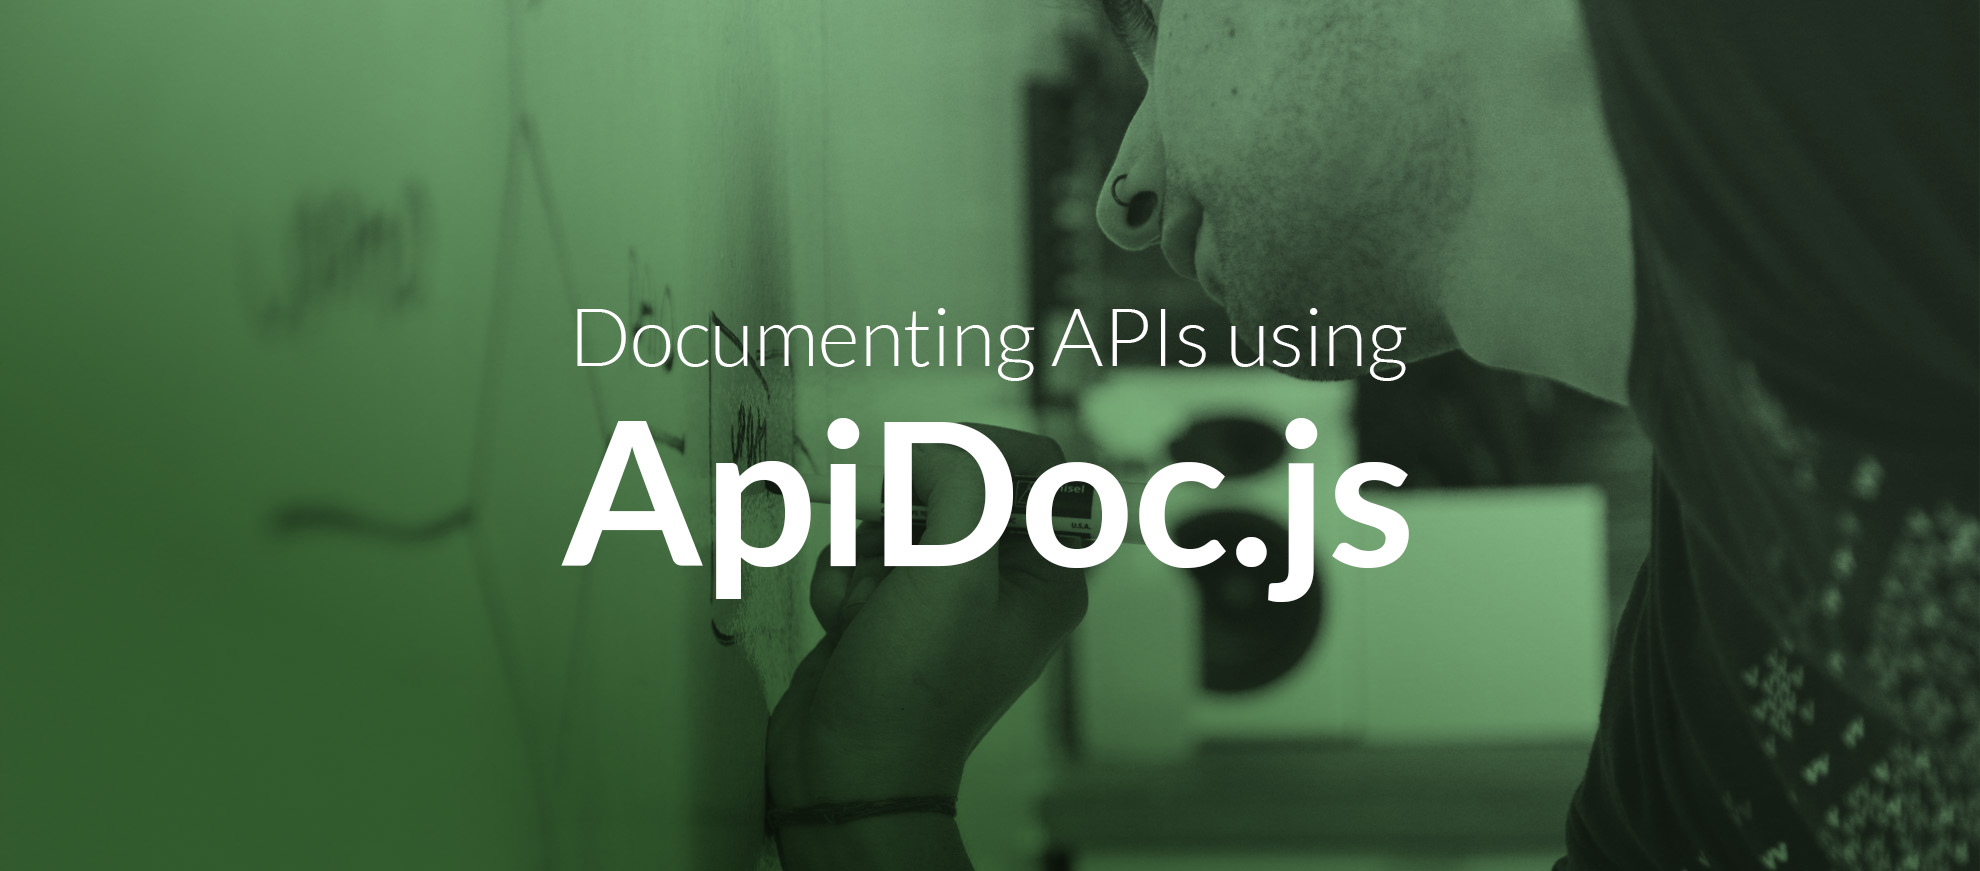 Documenting APIs using ApiDoc.js